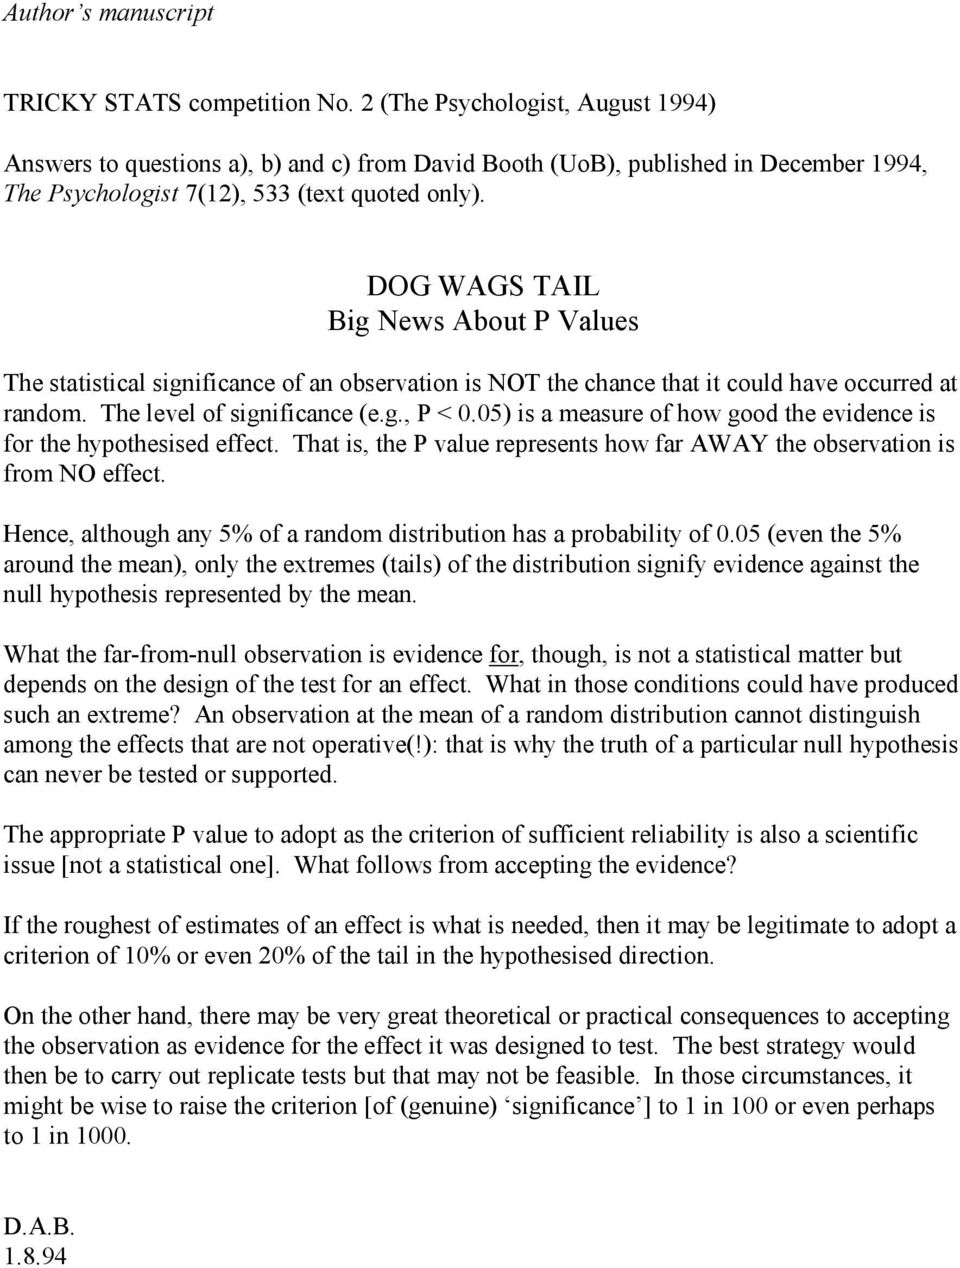 DOG WAGS TAIL Big News About P Values The statistical significance of an observation is NOT the chance that it could have occurred at random. The level of significance (e.g., P < 0.